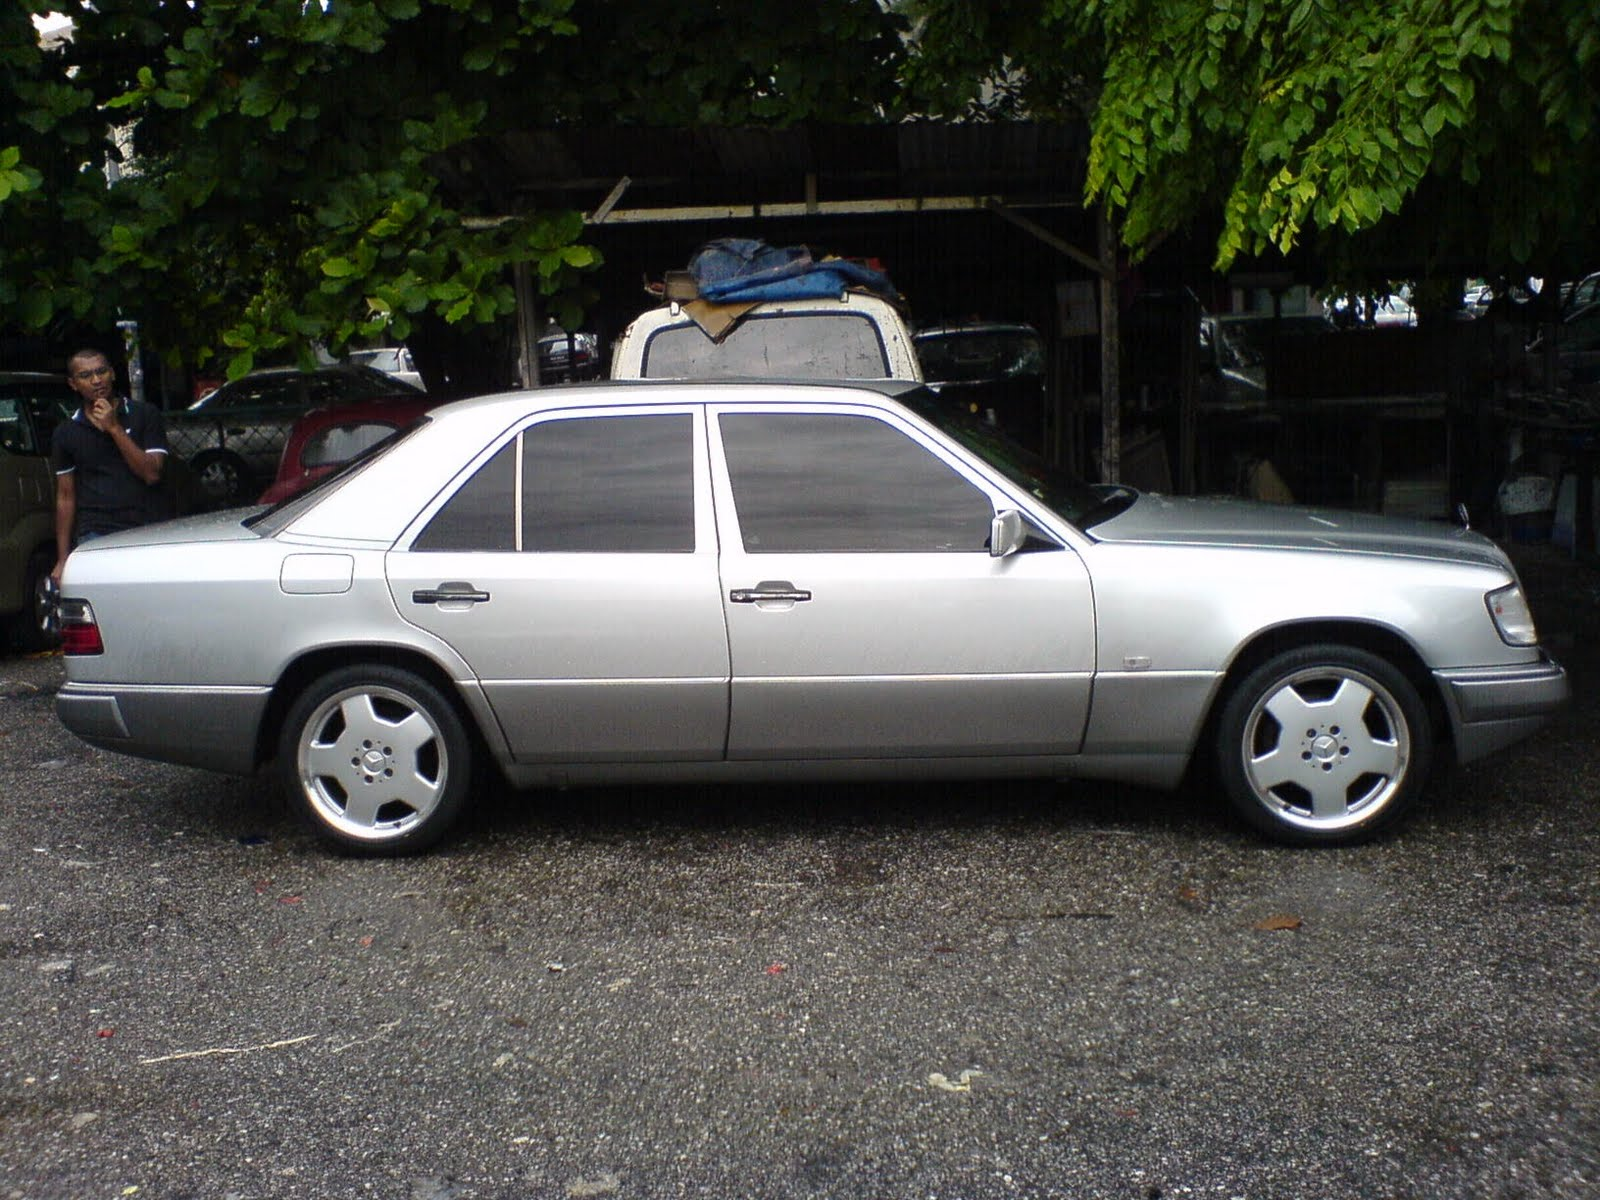 Motoring-Malaysia: Old vs  New Part II: 1990 Mercedes Benz 200E W124